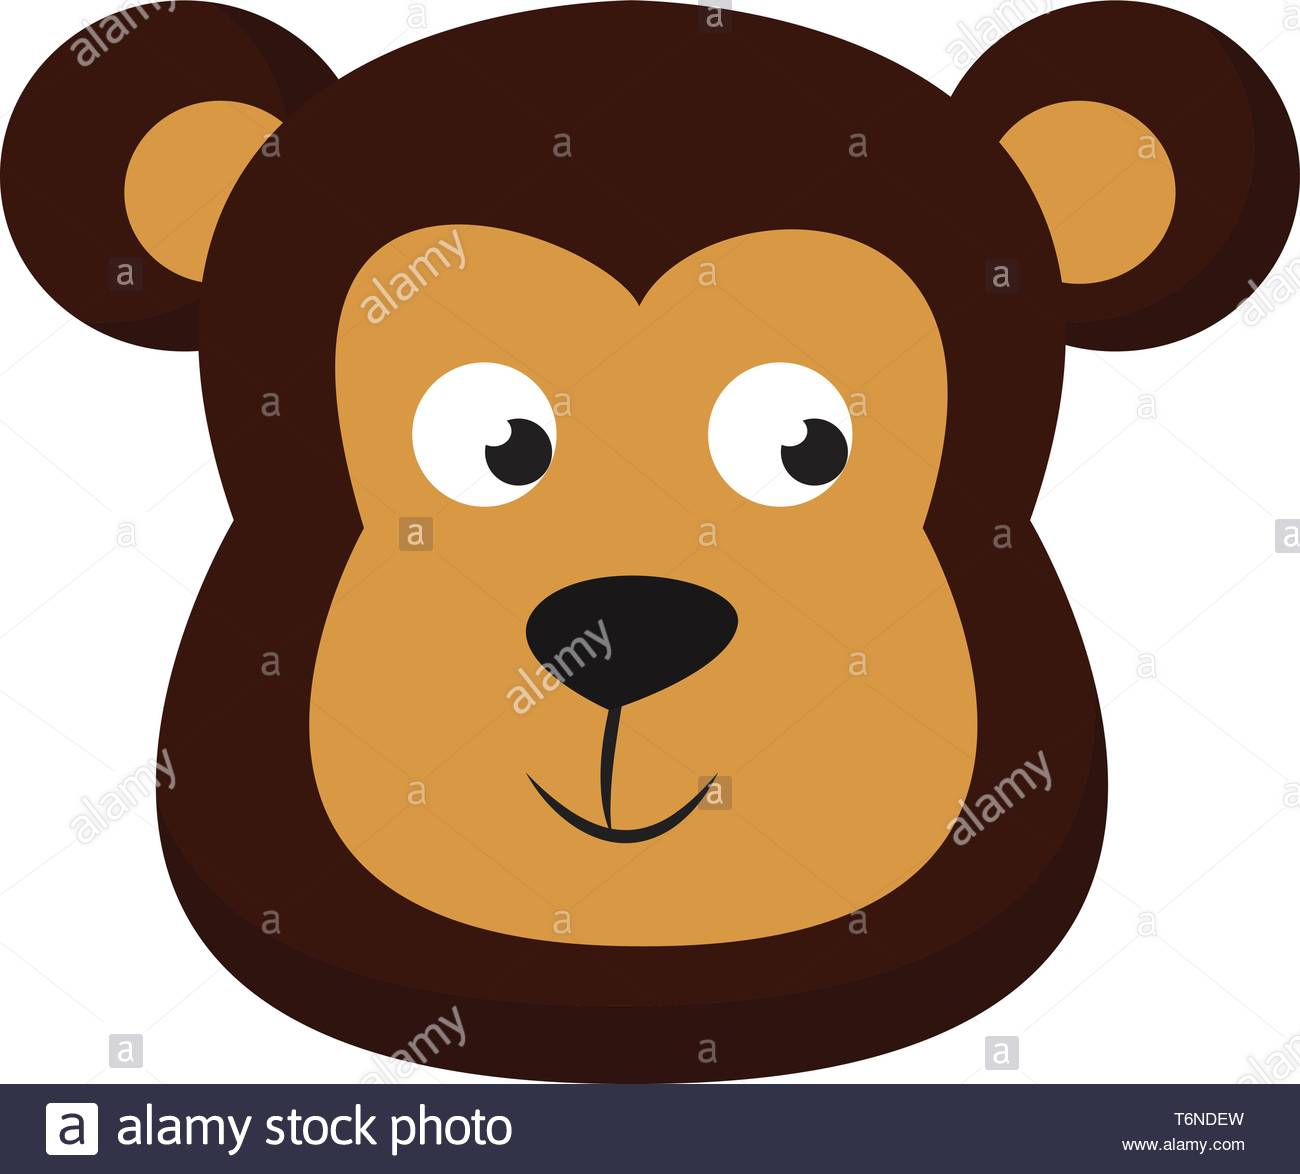 Clipart of the face of a cute little bear in shades of brown with.